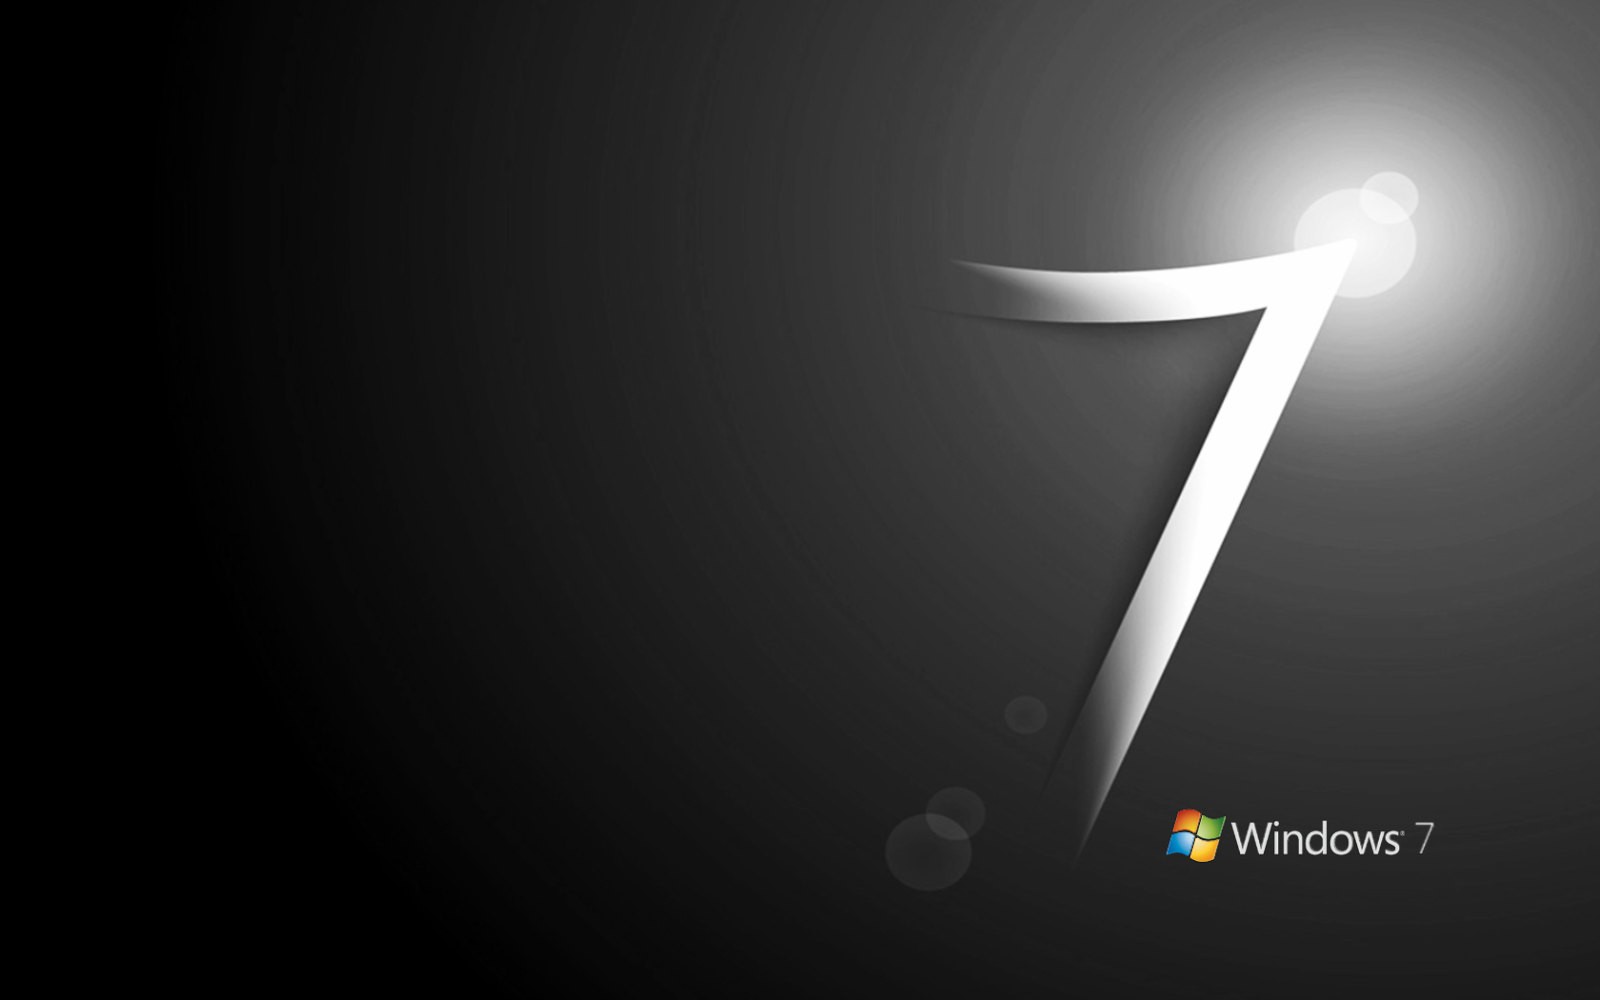 Wallpaper HD Windows 7 Download Free